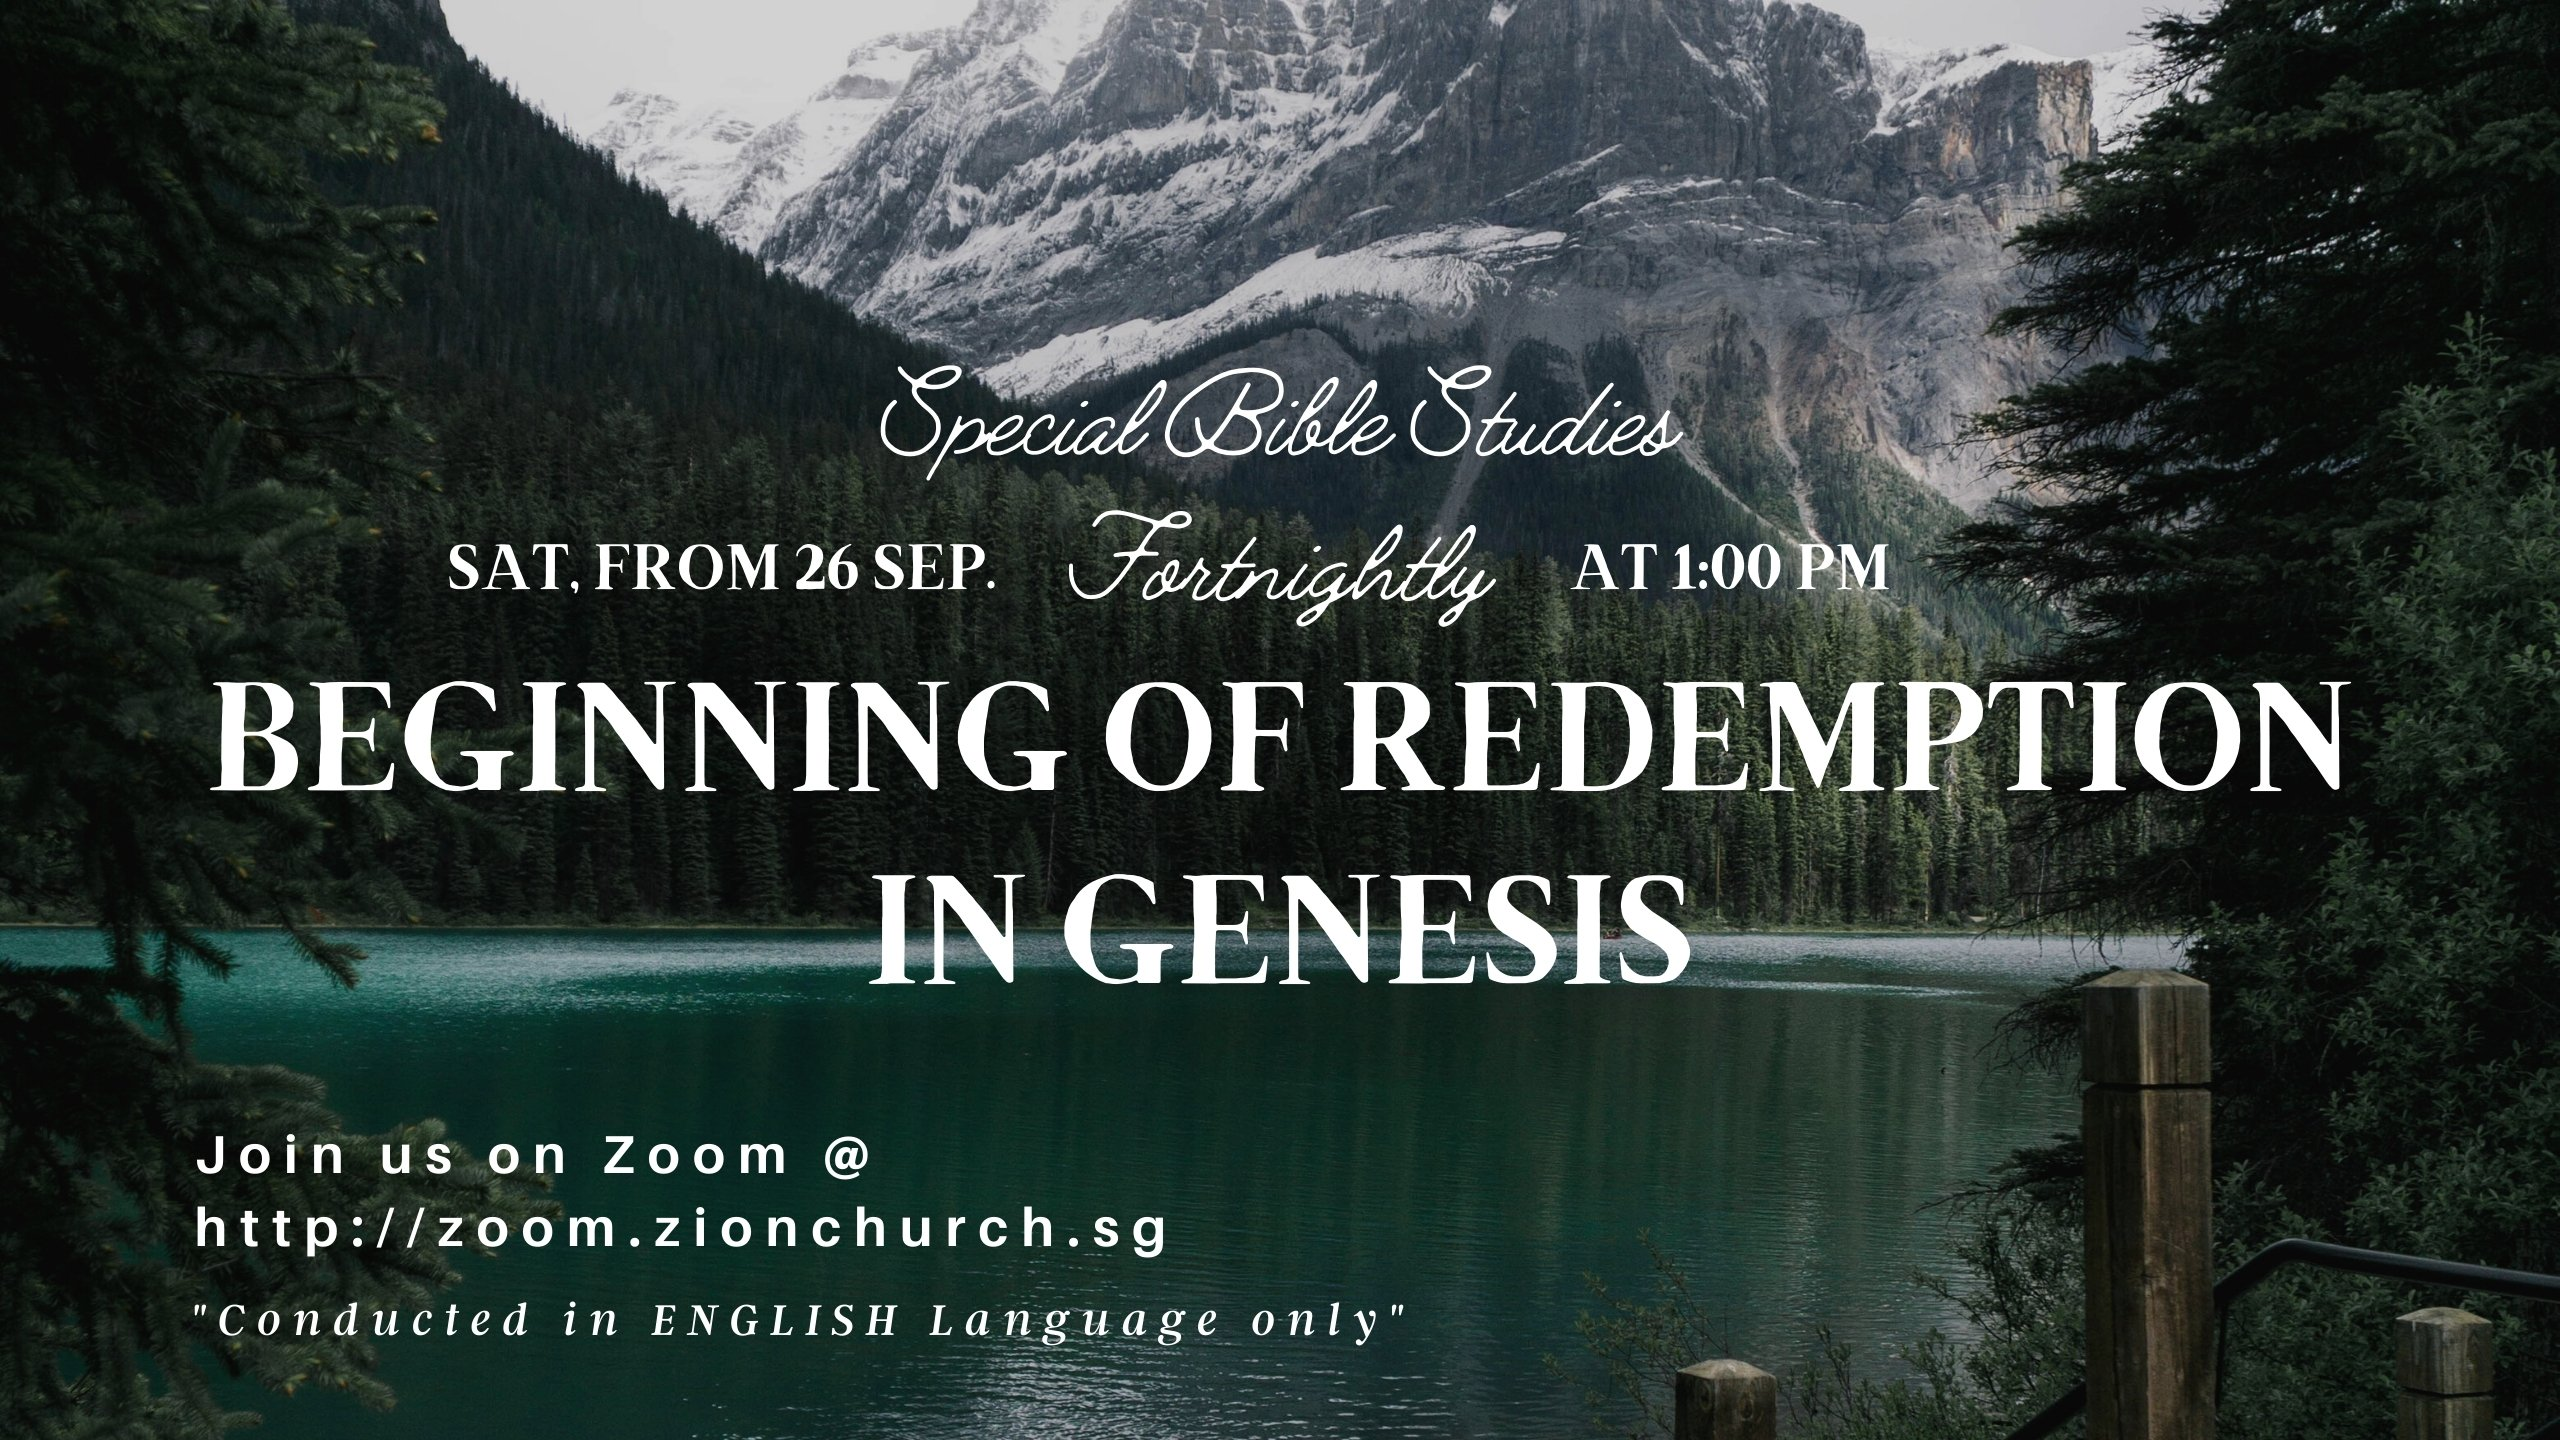 Special Bible Study Series